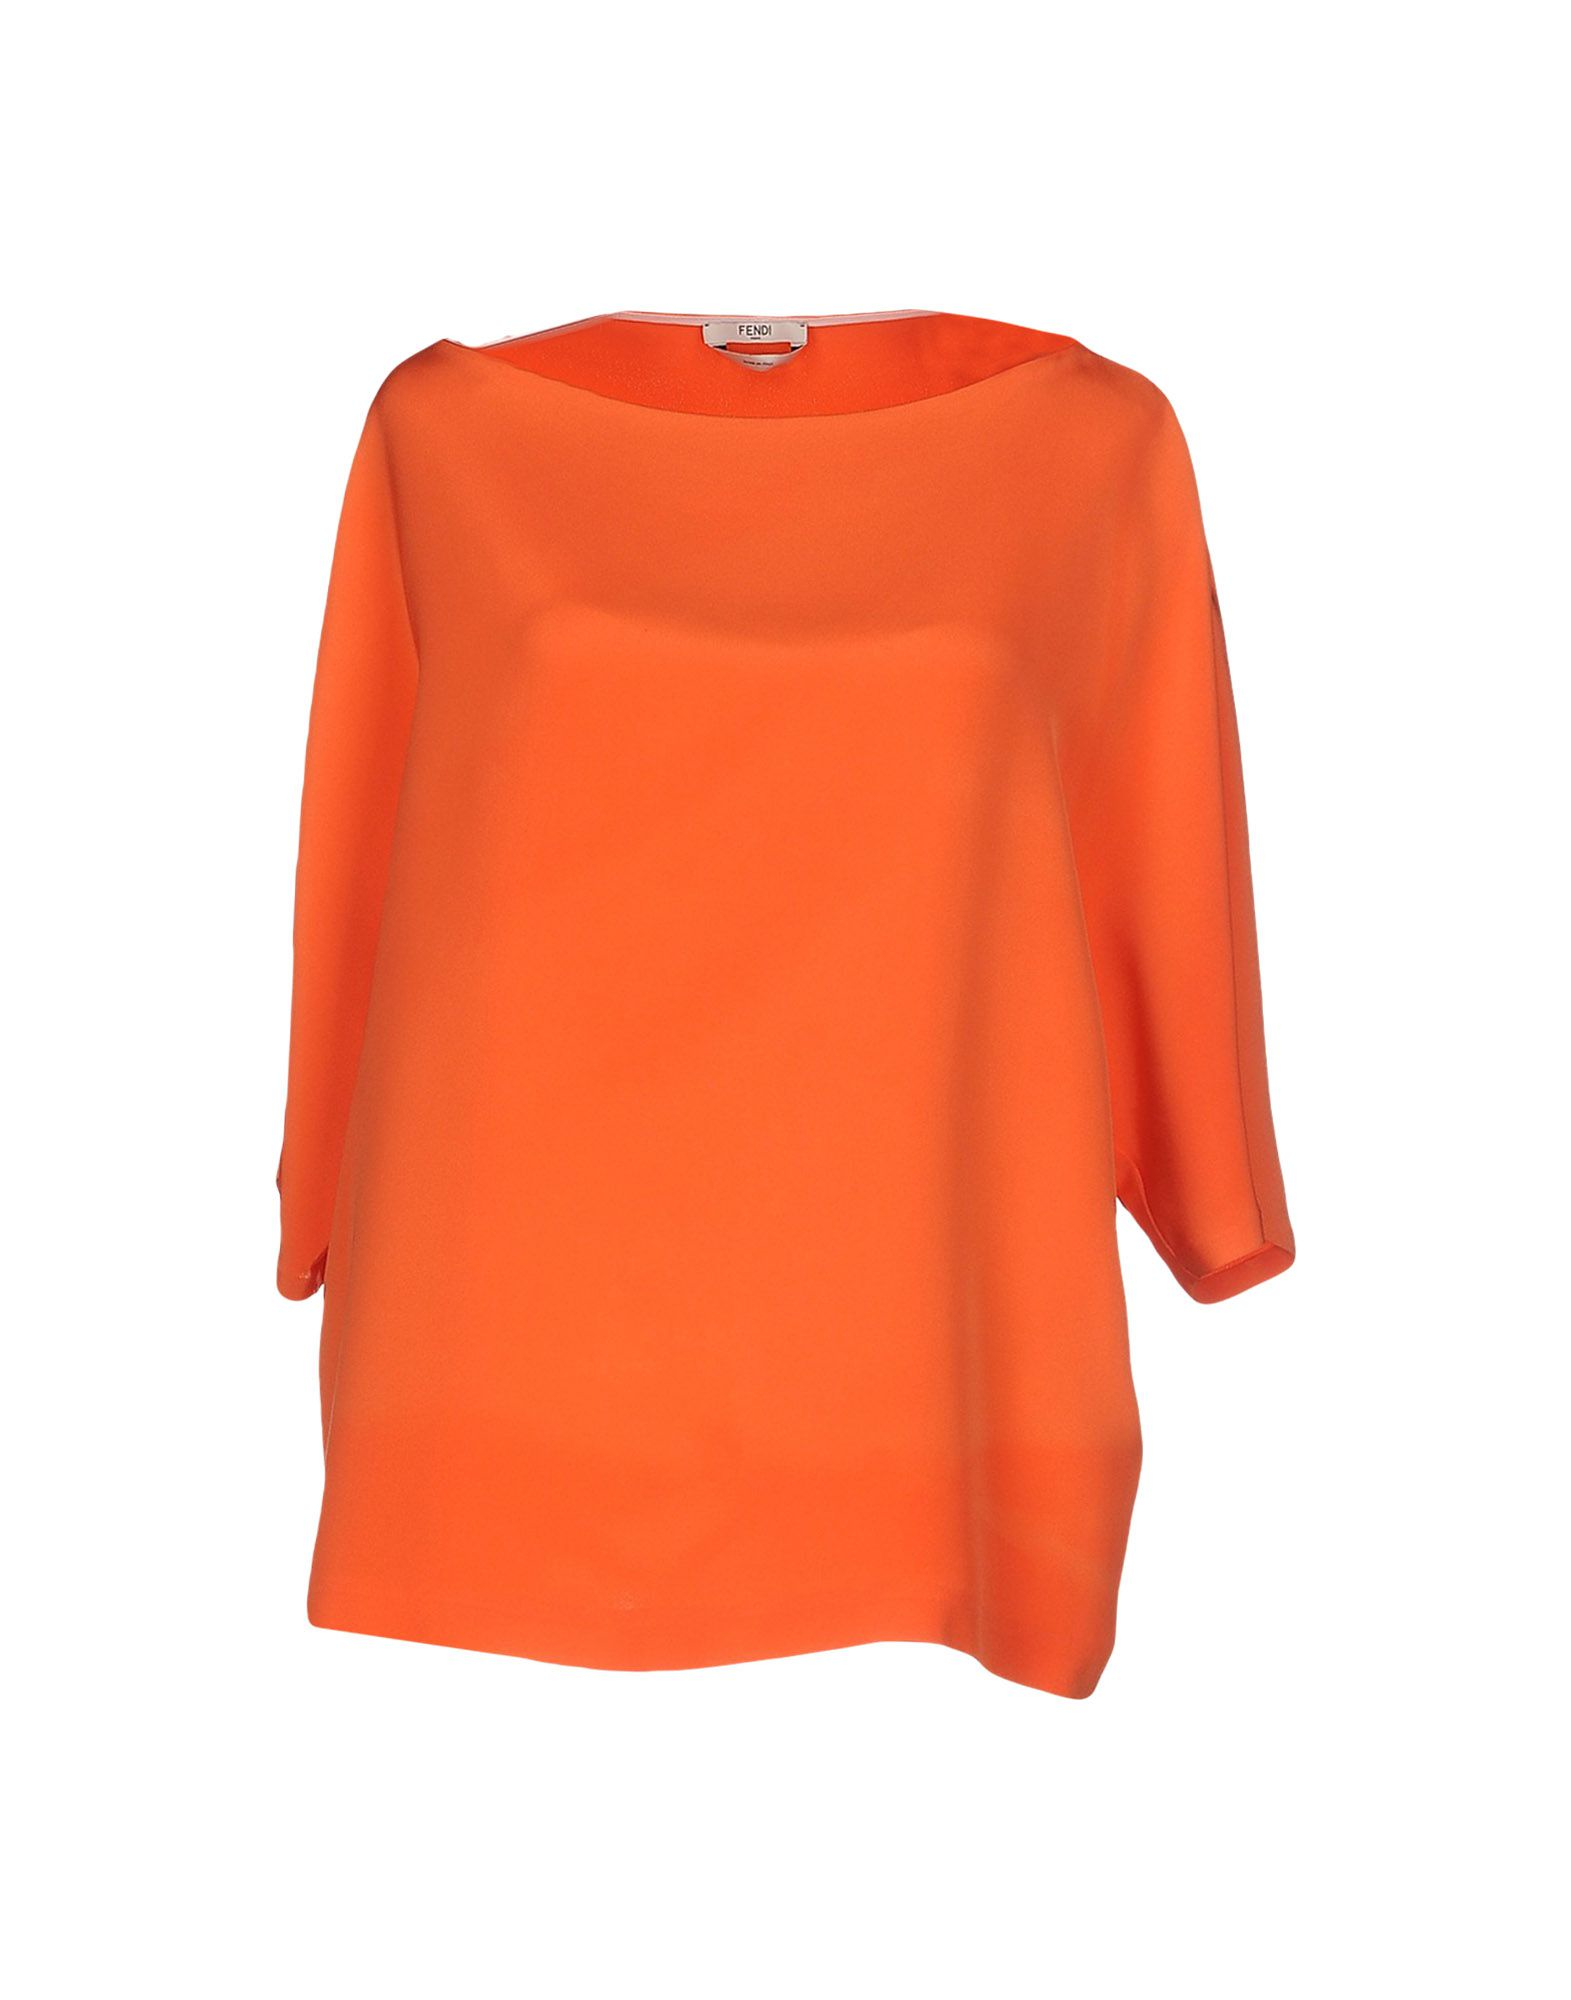 Free shipping BOTH ways on Shirts & Tops, Orange, Women, from our vast selection of styles. Fast delivery, and 24/7/ real-person service with a smile. Click or call